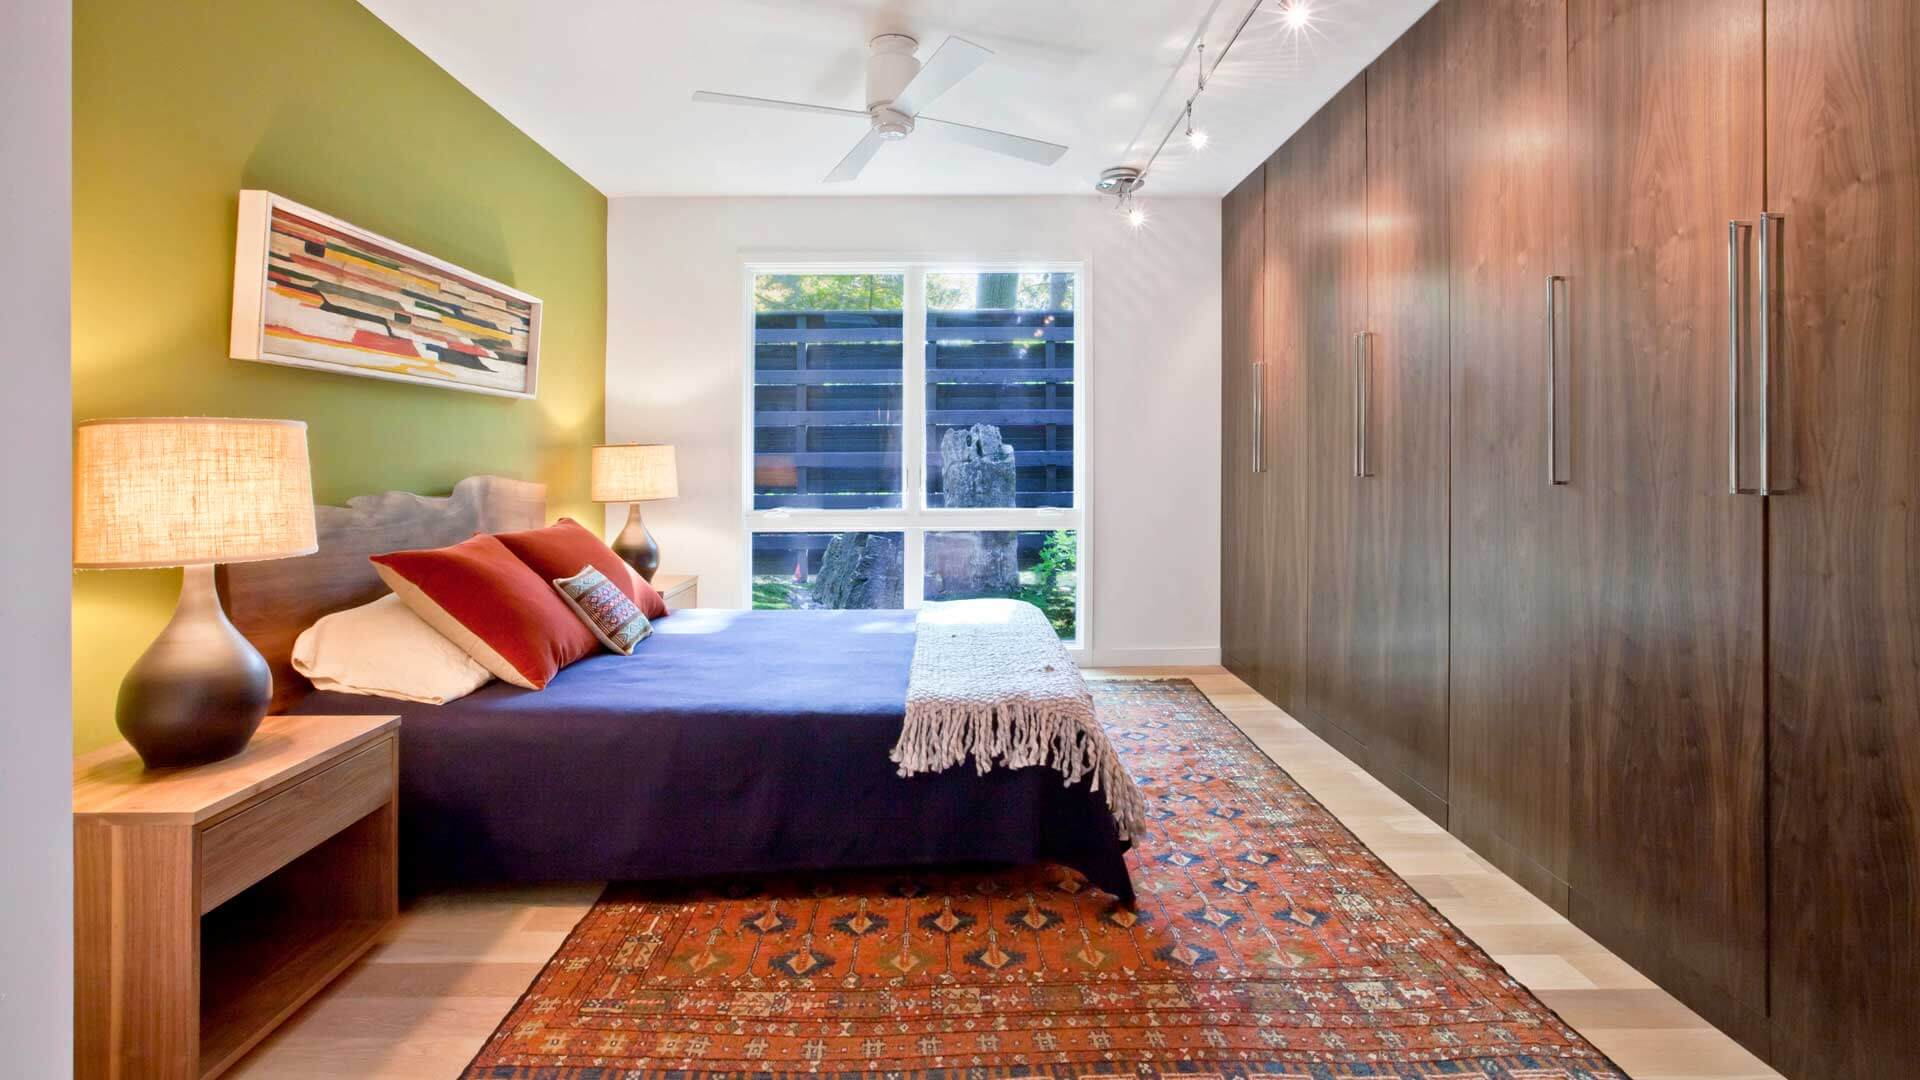 Master Bedroom, large red area rug, Walnut cabinet wall, large window to private moss garden court, custom artwork, track lighting, white modern ceiling fan, blue bedspread, wide plank white oak flooring - Midcentury Modern Renovation - 81st Street - Indianapolis, Christopher Short, Architect, HAUS Architecture